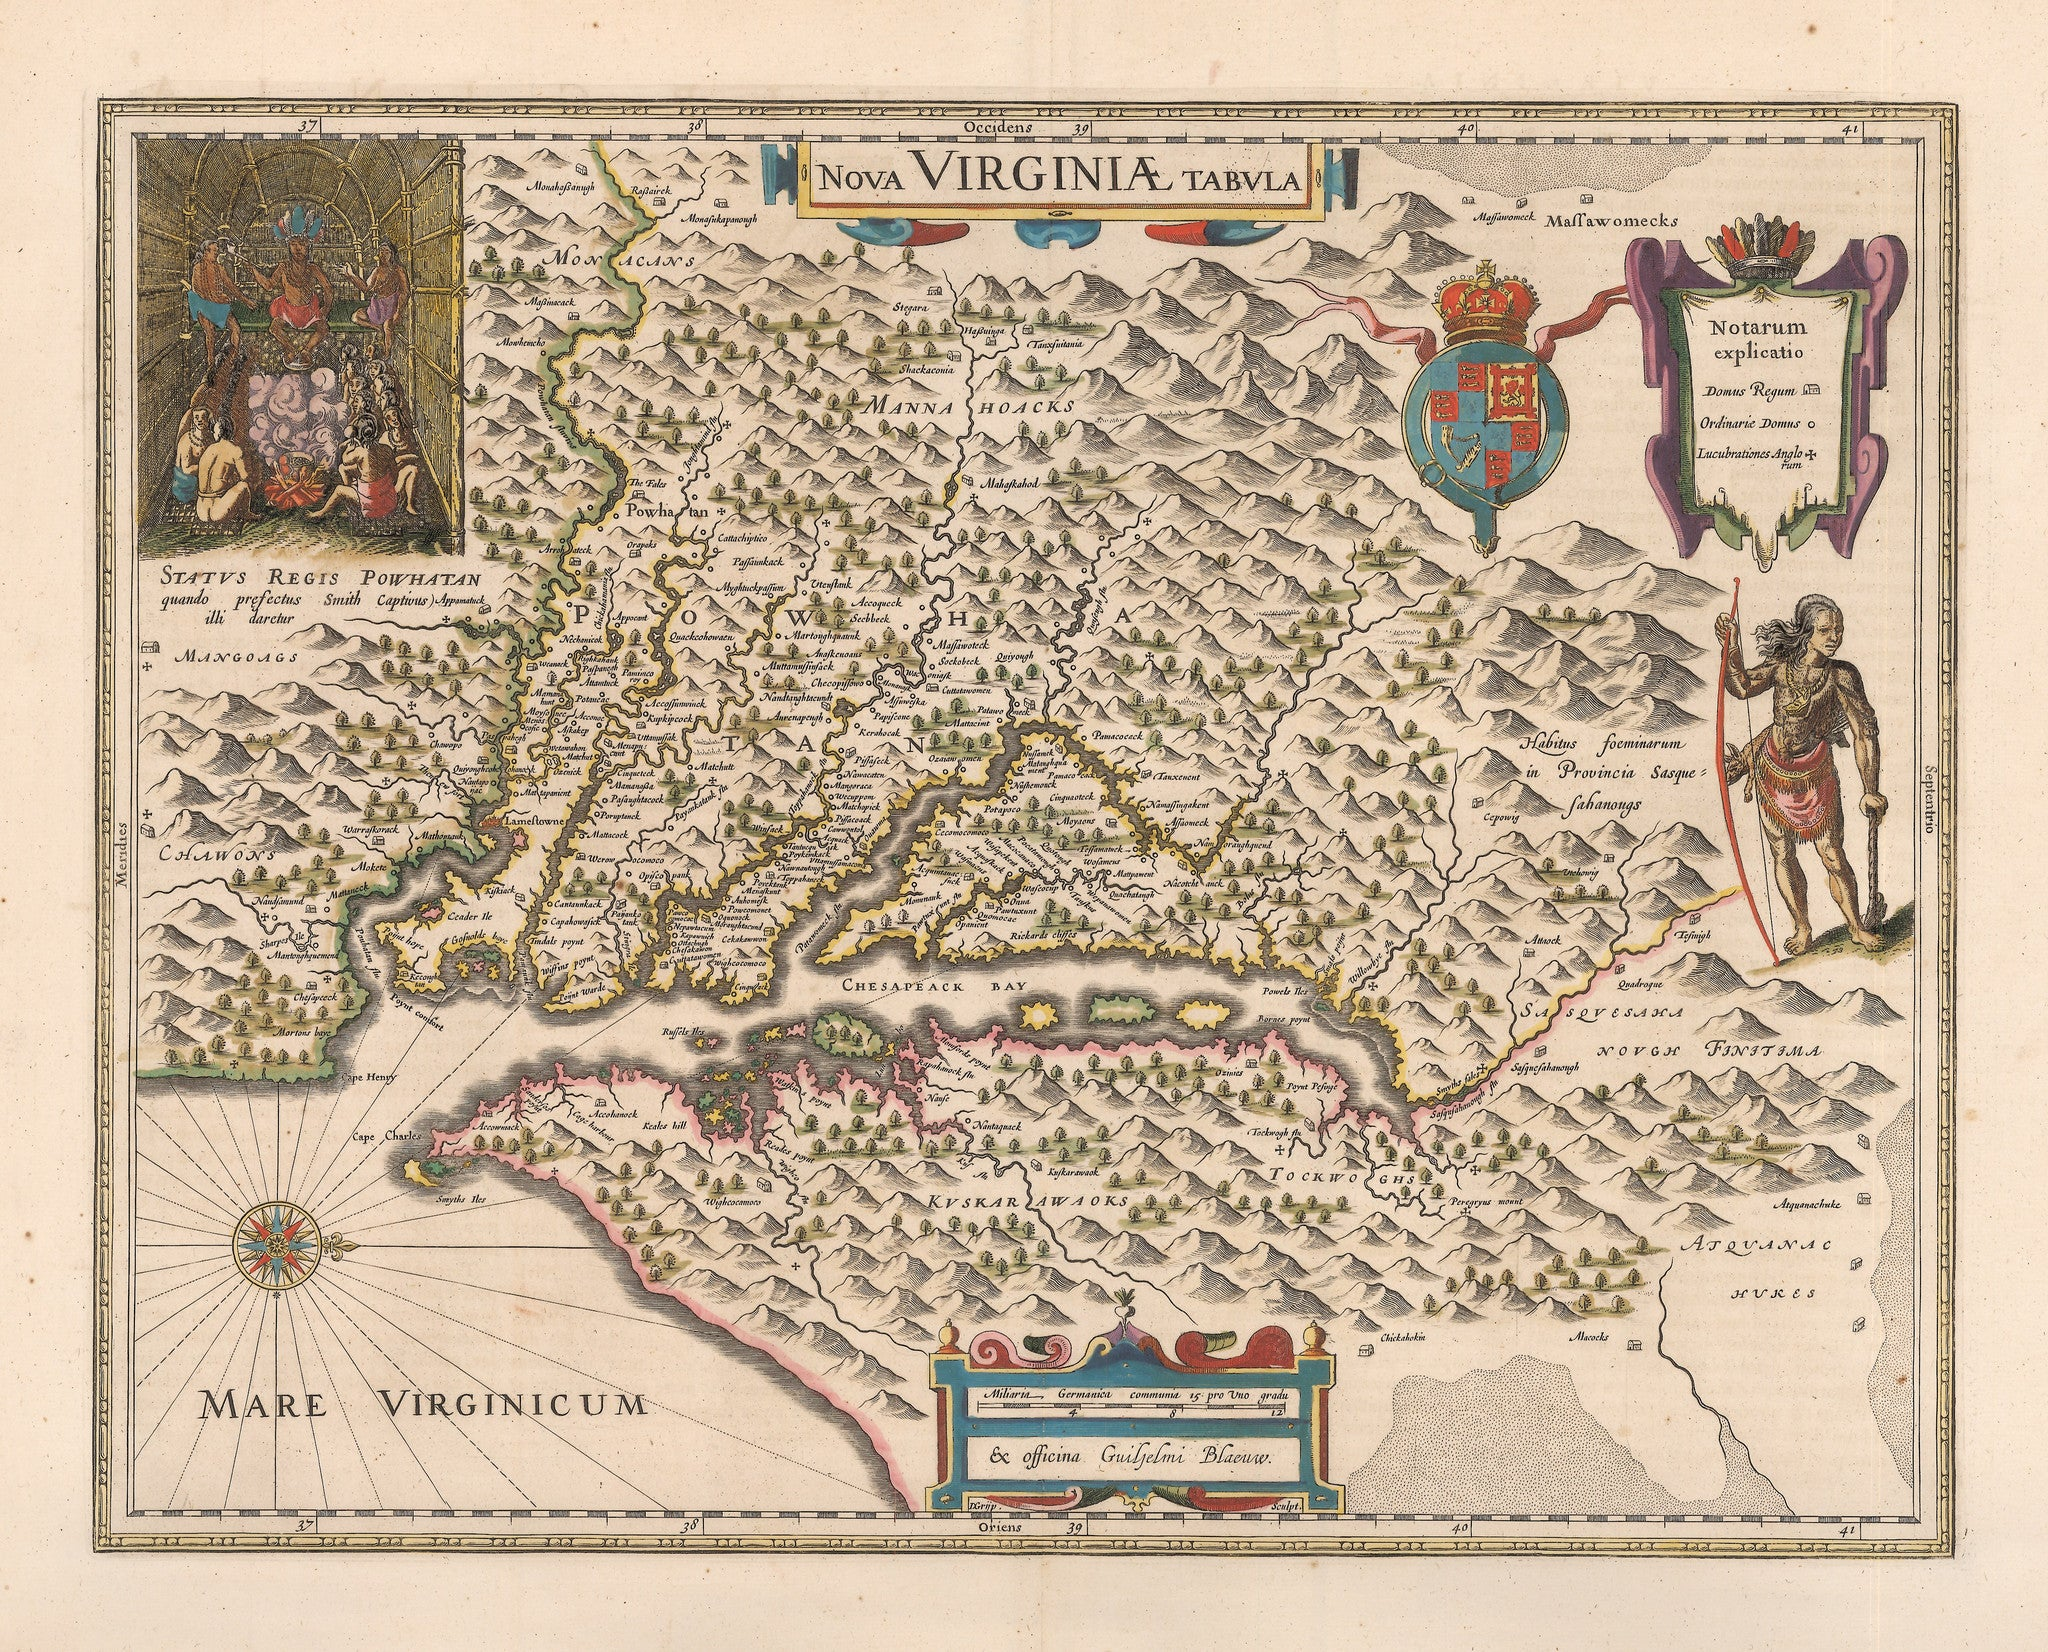 Authentic Antique Map of Virginia and Chesapeake Bay: Nova Virginiae Tabula By: Willem Janszoon Blaeu Date: 1640 (circa) Amsterdam